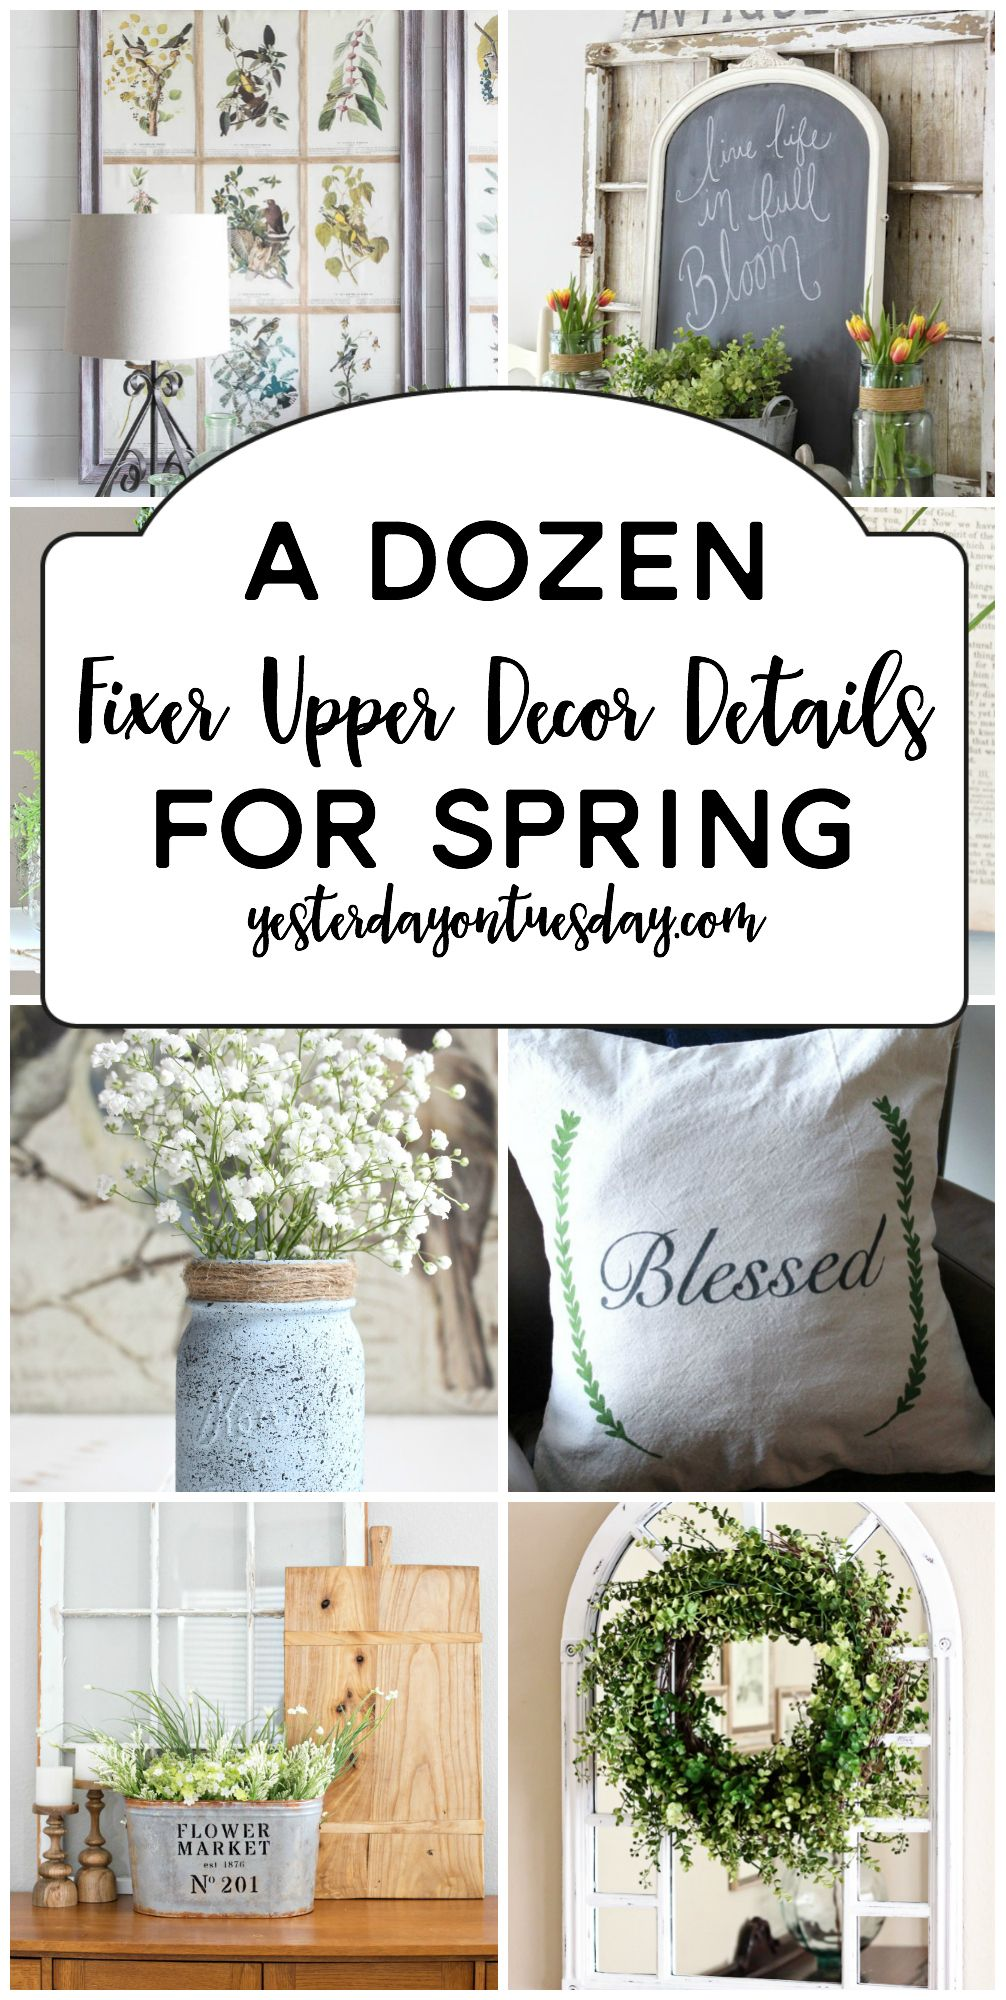 A Dozen Fixer Upper Decor Details for Spring: Fresh ideas for sprucing up your home including greenery, pillows, printables, flowers and more. modern farmhouse | fixer upper | spring | decor | decorating